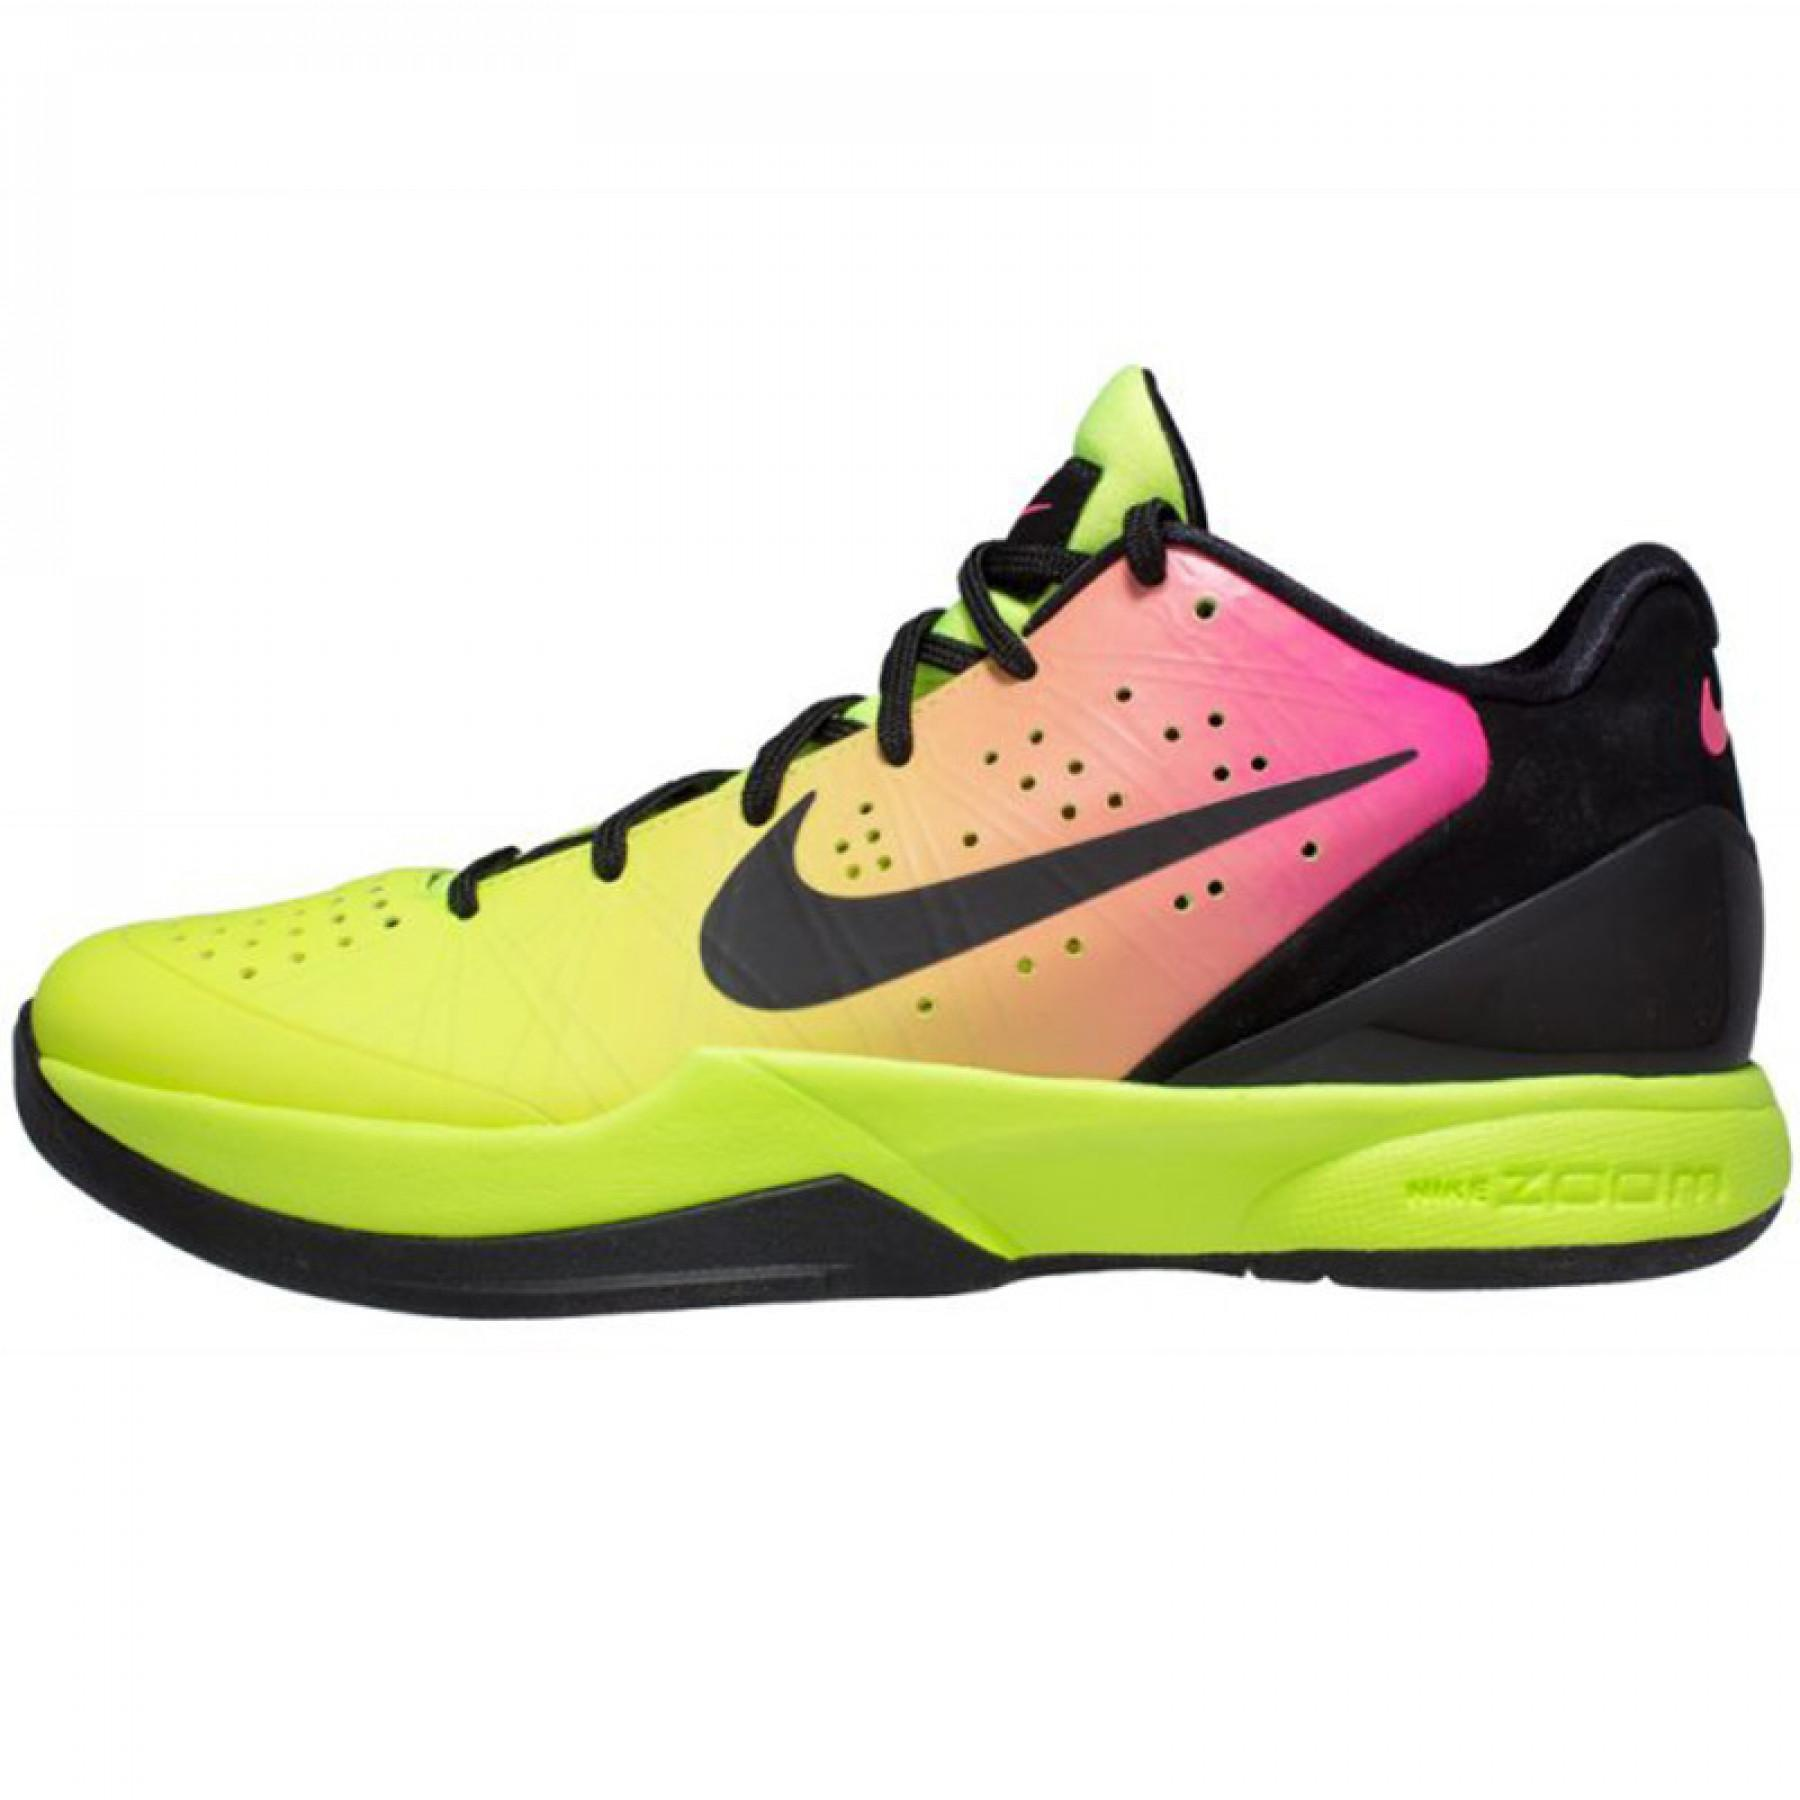 Chaussures Nike Air Zoom HyperAttack Unlimited vert fluo/rose/noir